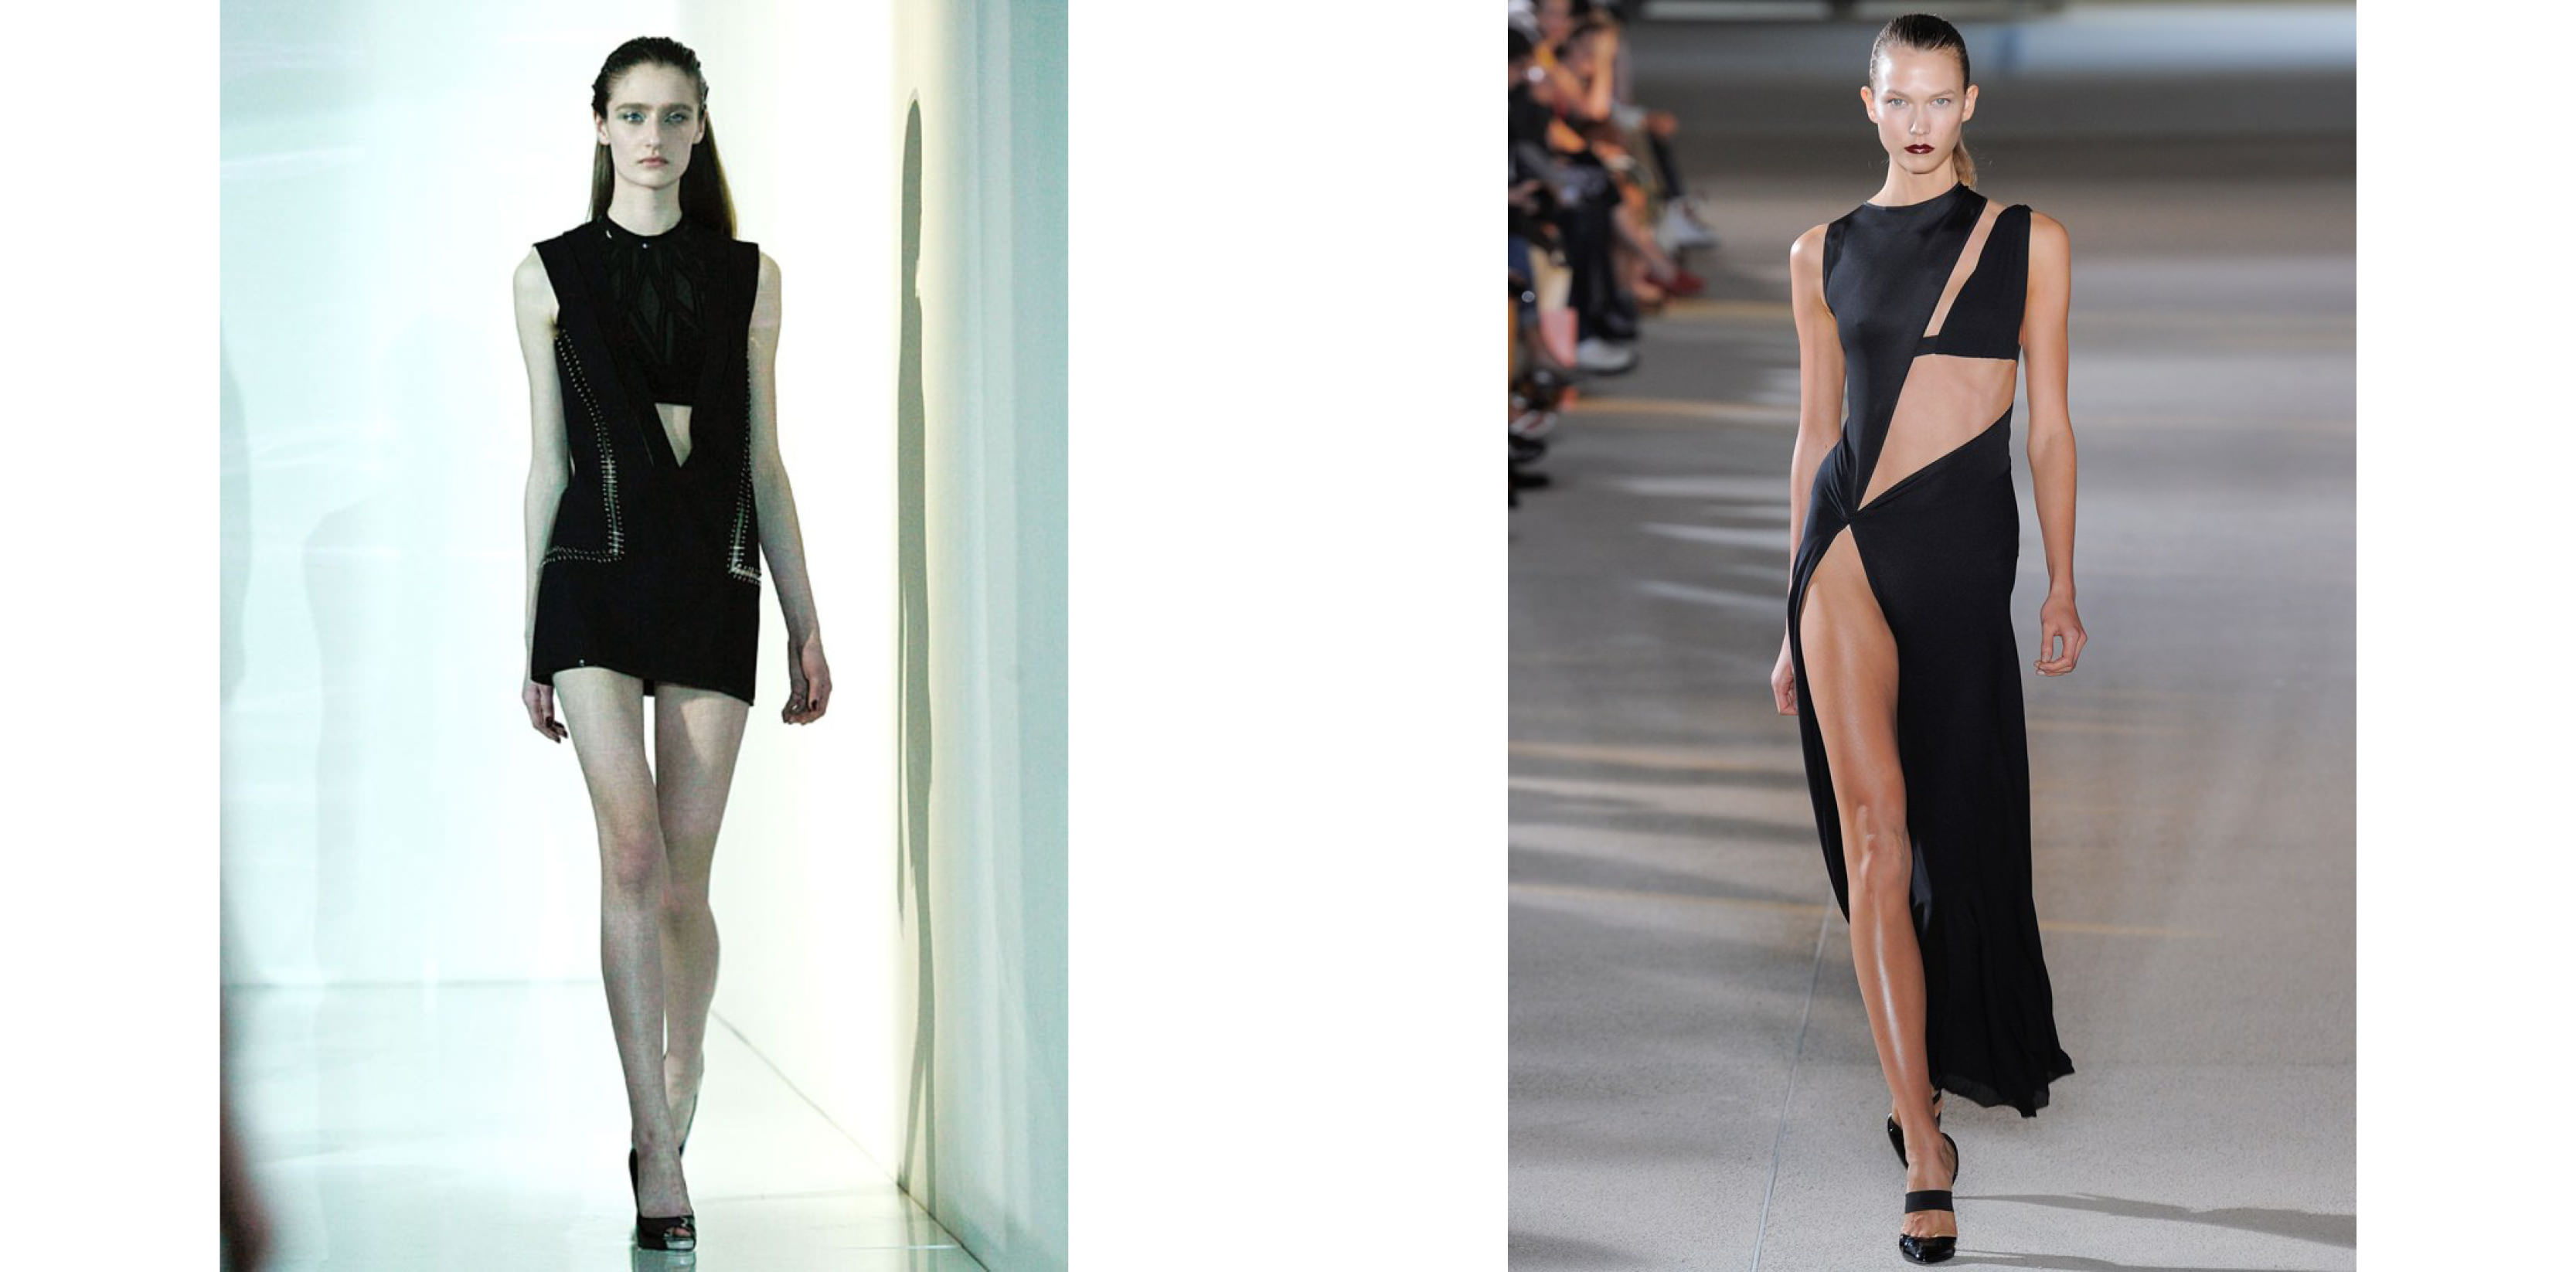 Left: ANDAM collection. Right: Karlie Kloss at the spring-summer 2012 runway show   The decisive turning point:  Anthony Vaccarello's meteoric rise continued with his winning of the ANDAM Prize in 2011. Following this distinction, his spring-summer 2012 show reached dizzying heights as the hottest models of the moment, including Anja Rubik, Joan Smalls and Abbey Lee Kershaw, all proudly wore his designs on the catwalk. In fashion circles people still remember the energy emitted by Karlie Kloss in that long black asymmetric dress revealing one of her legs right up to her hip. The audience shuddered visibly.